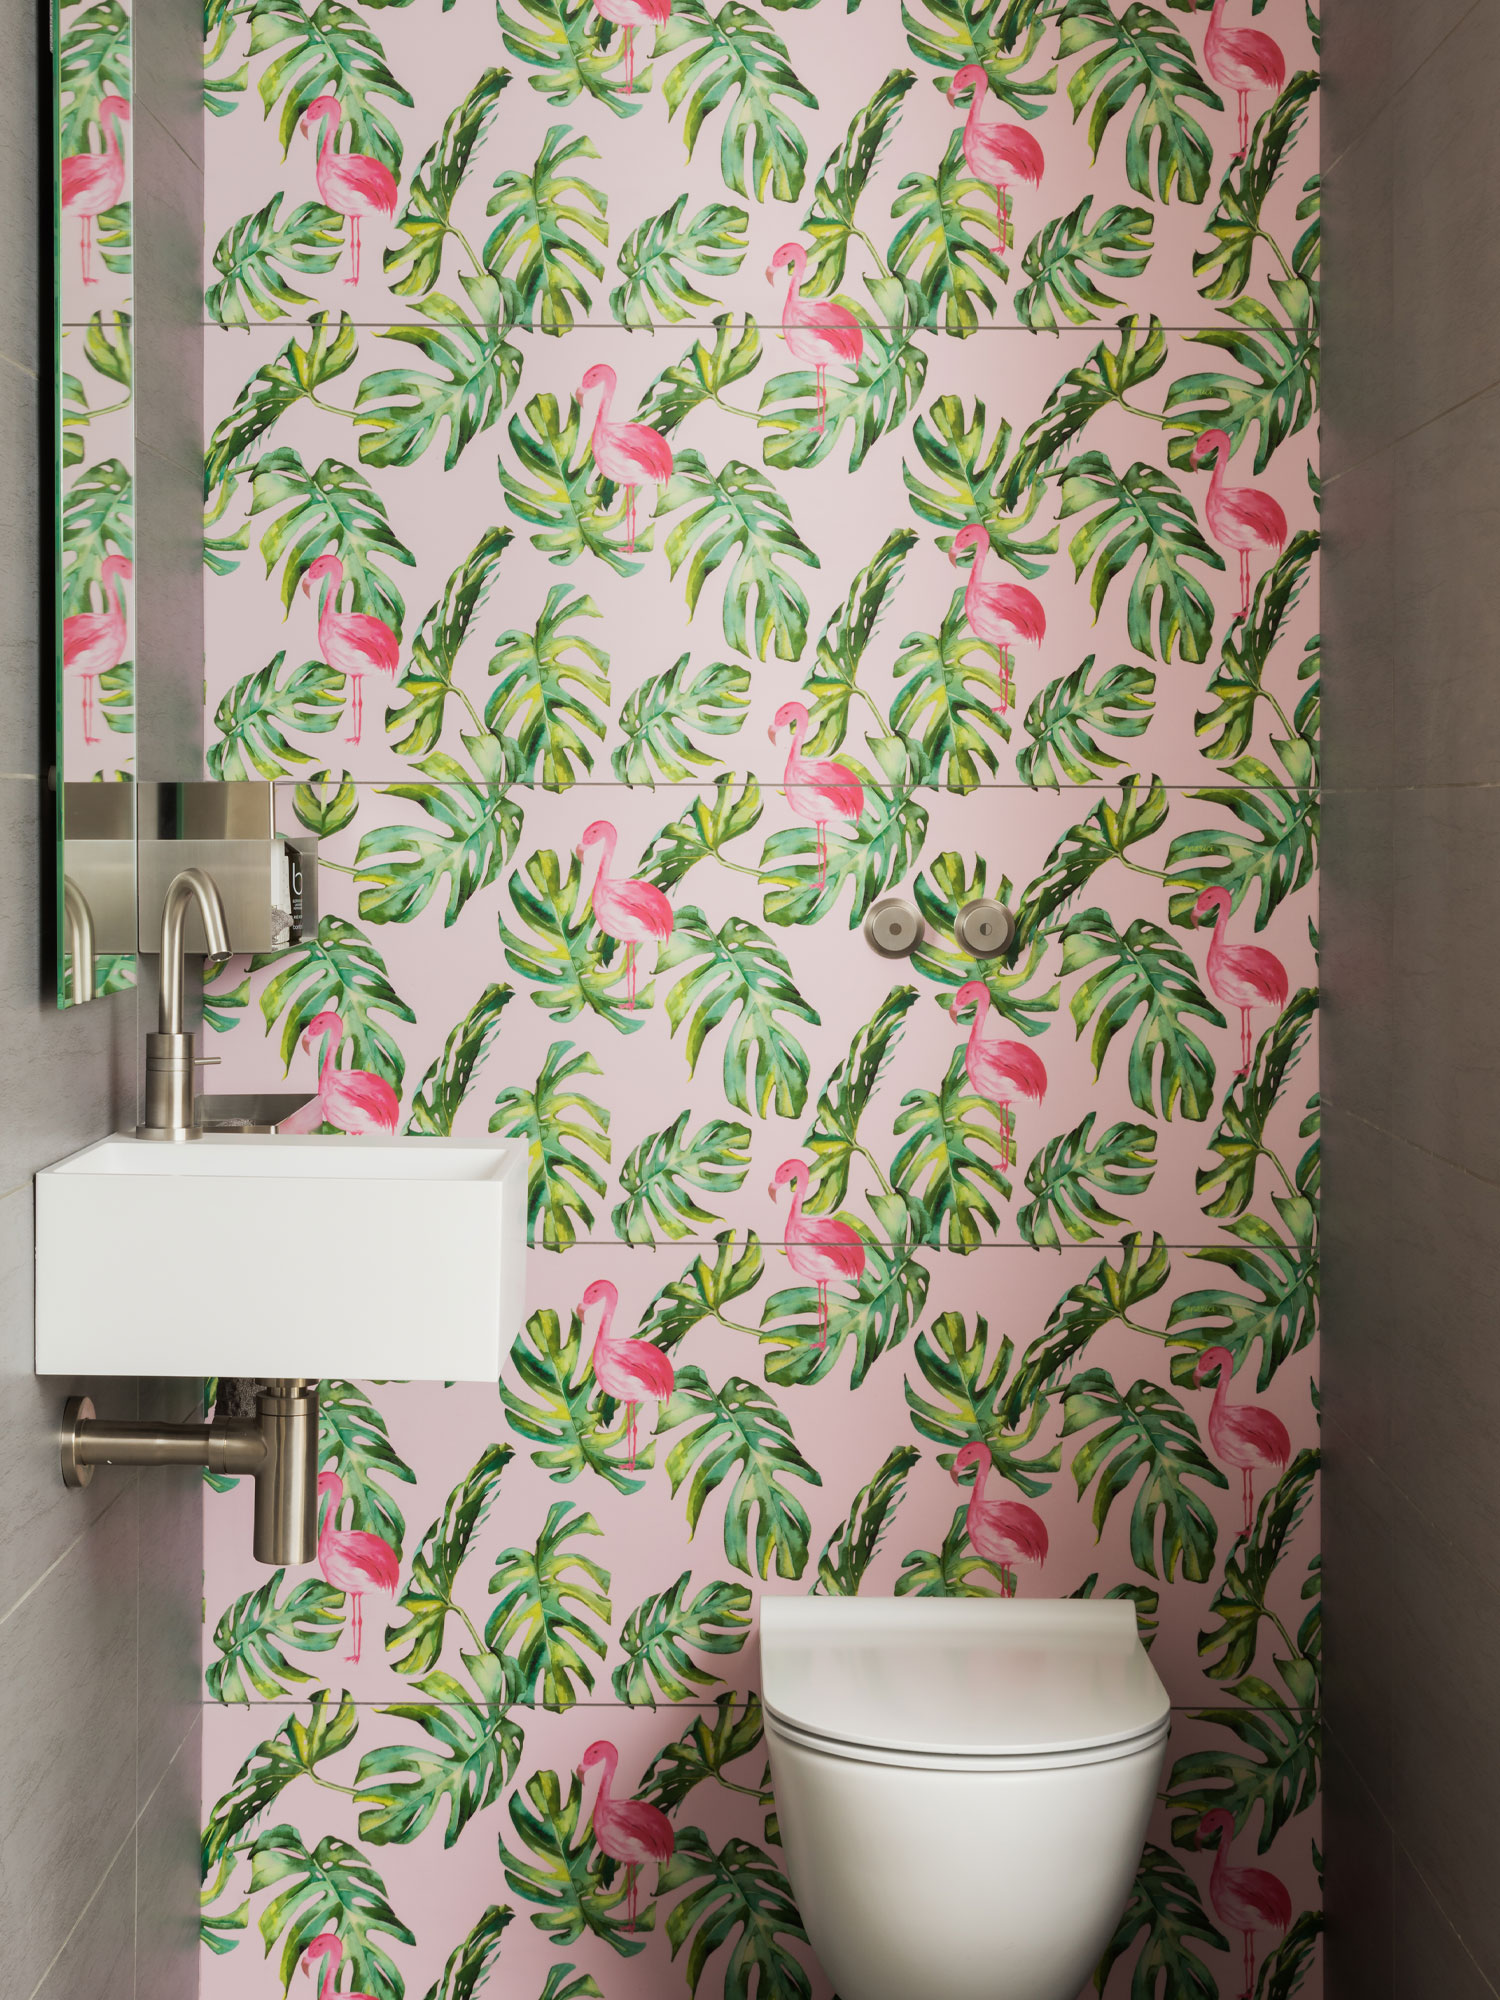 West One Bathrooms Inspiration Bold and beautiful image2b